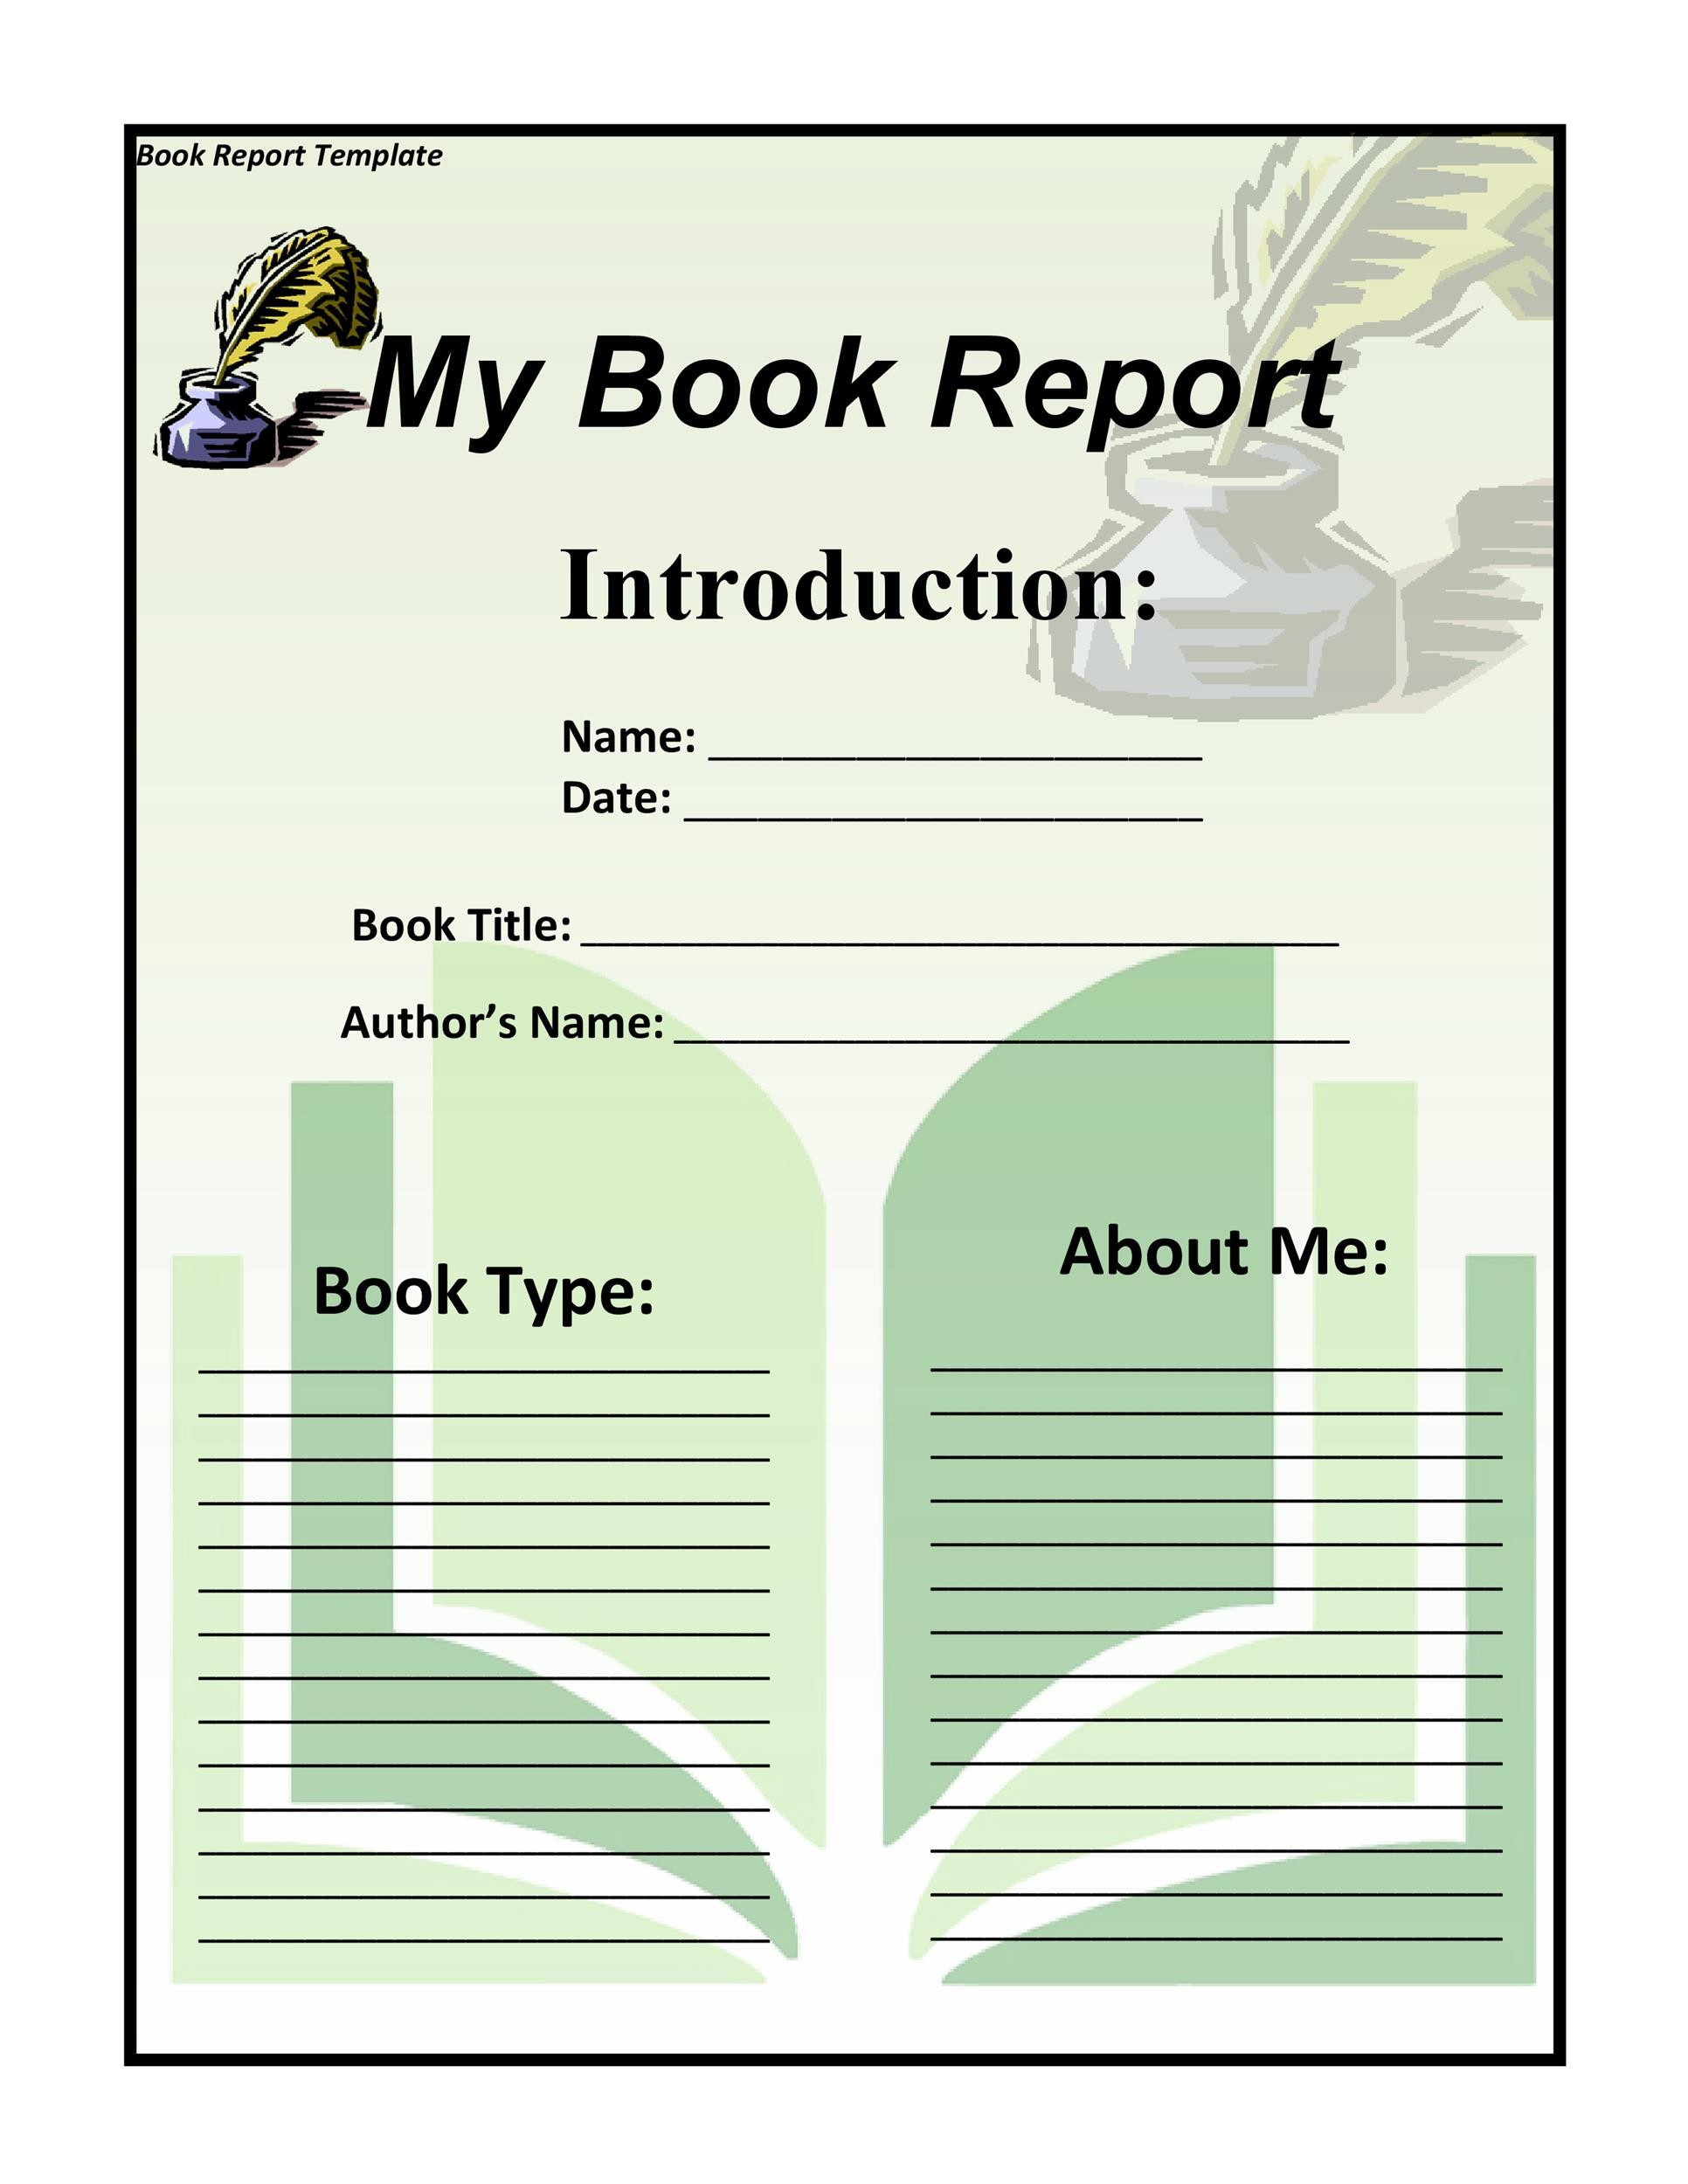 Book Report Templates & Reading Worksheets